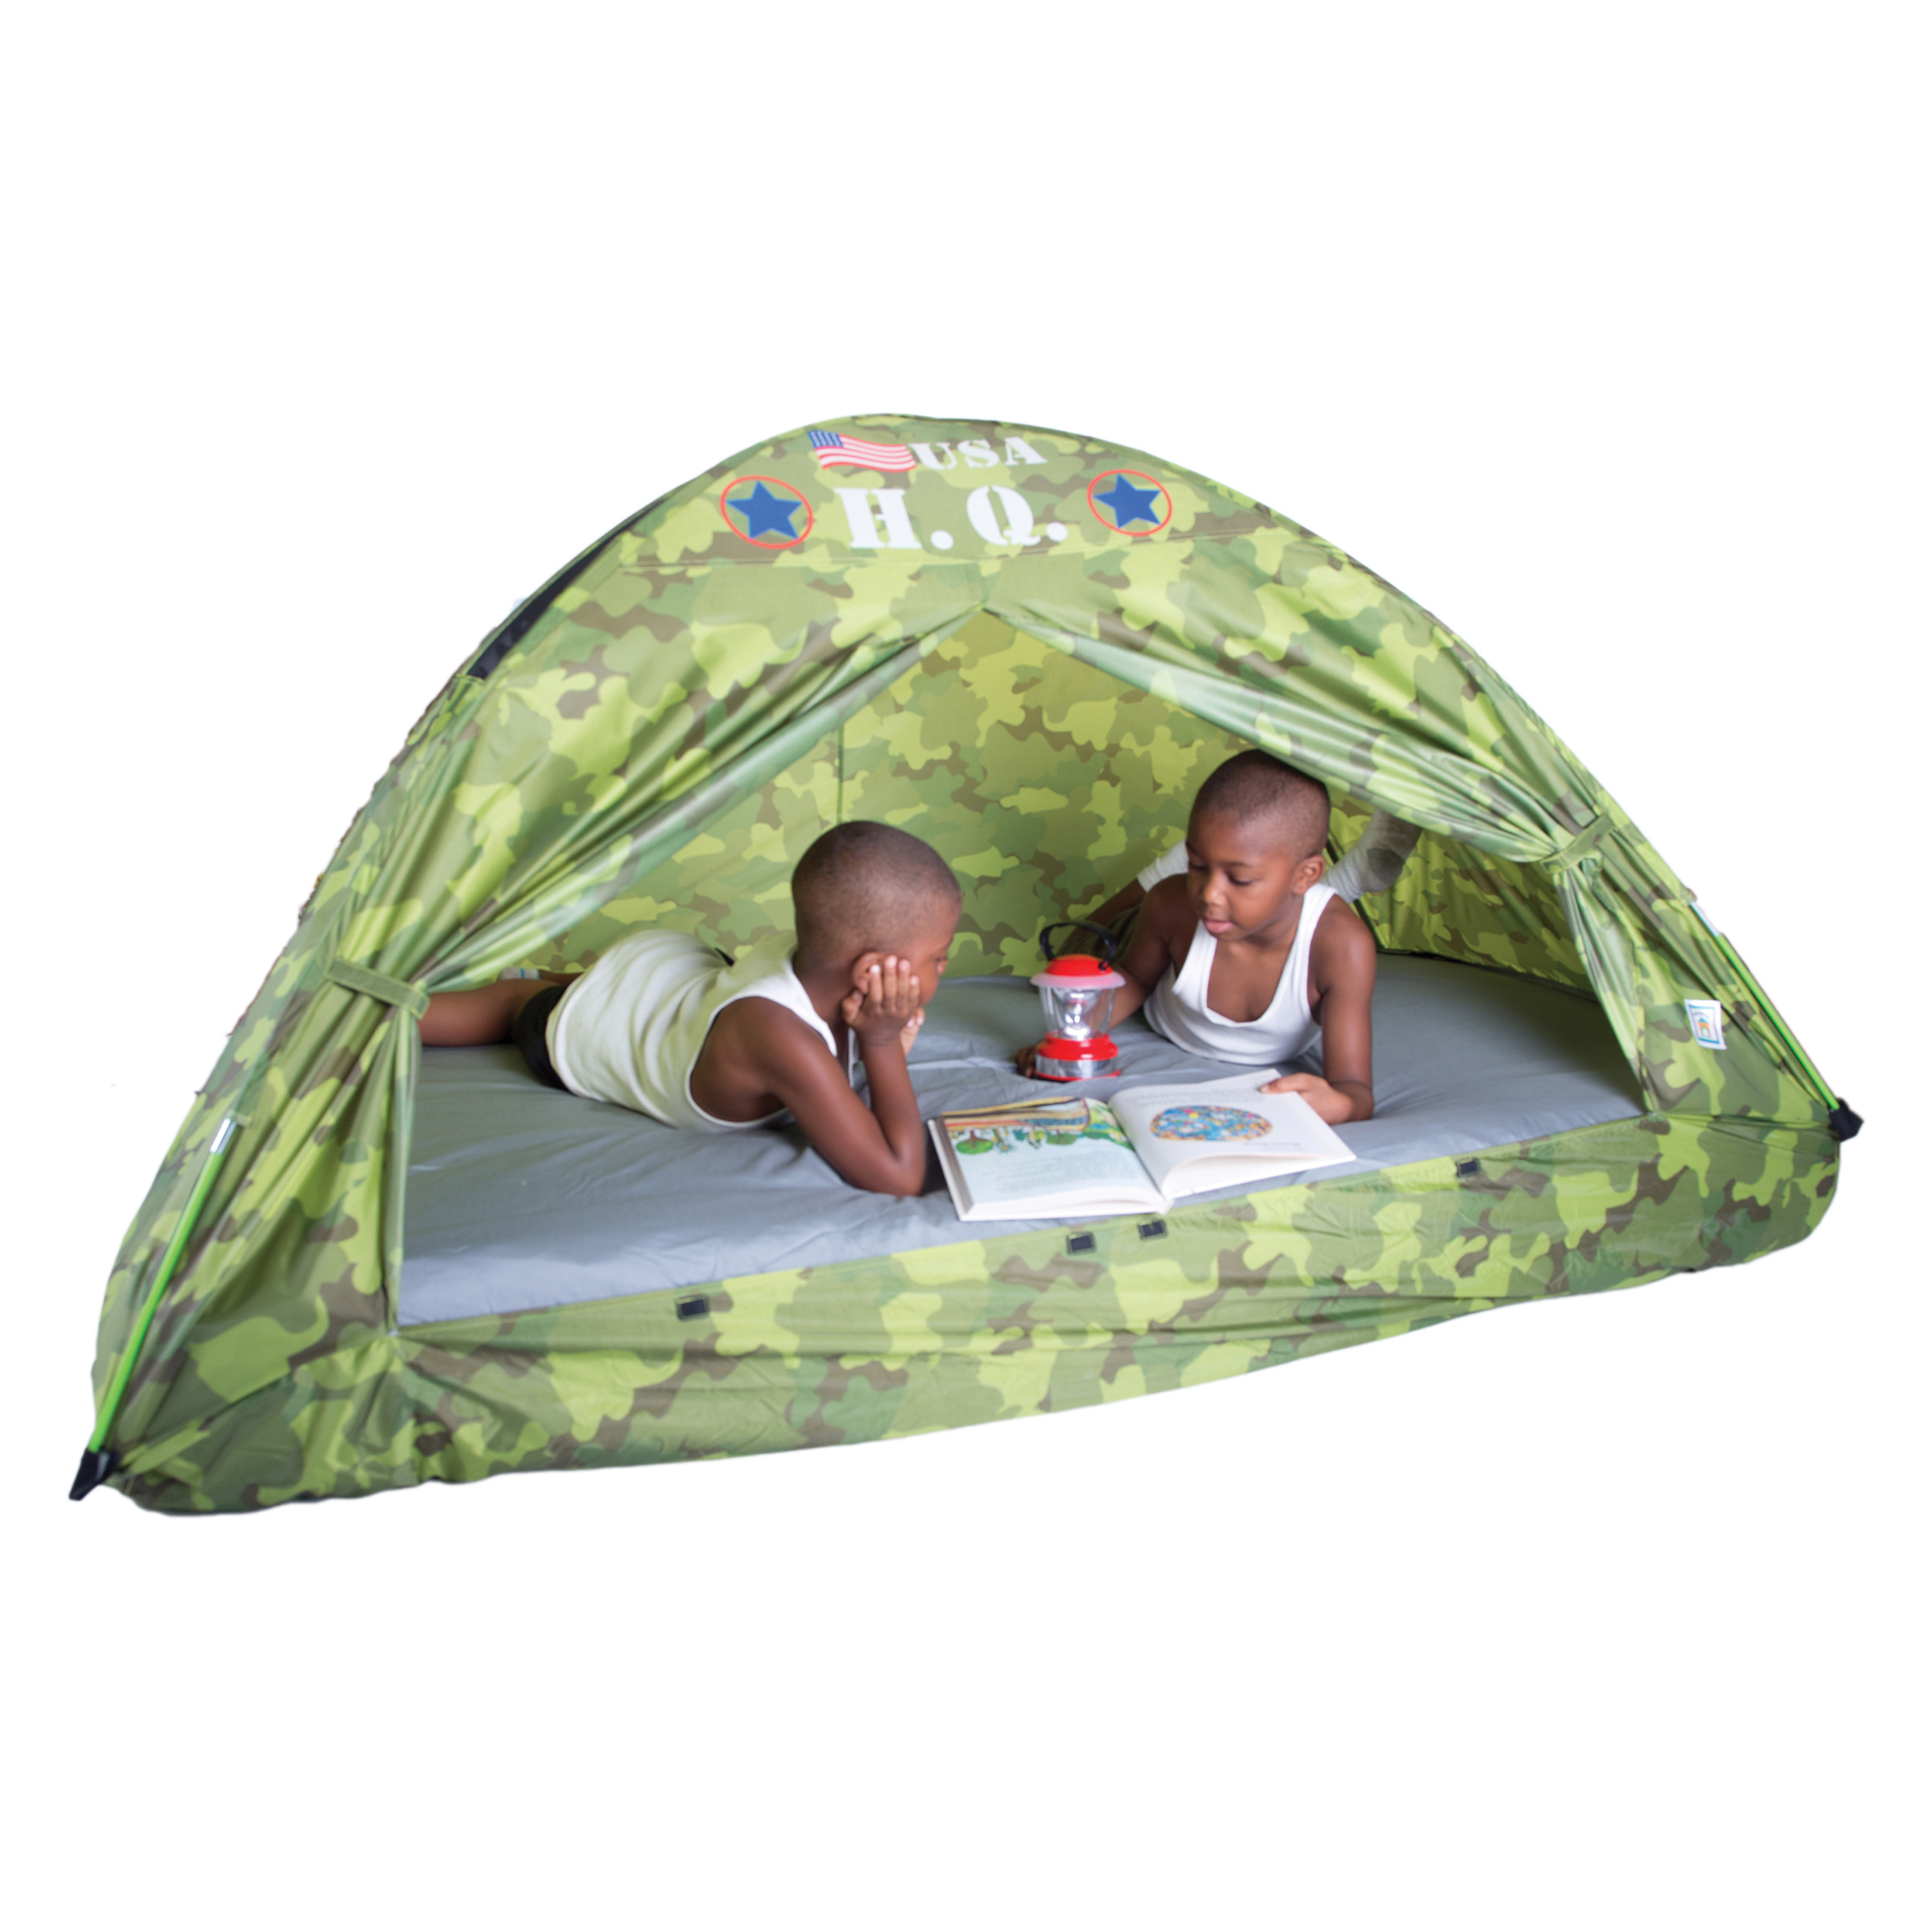 pacific play tents hq bed tent twin size indoor